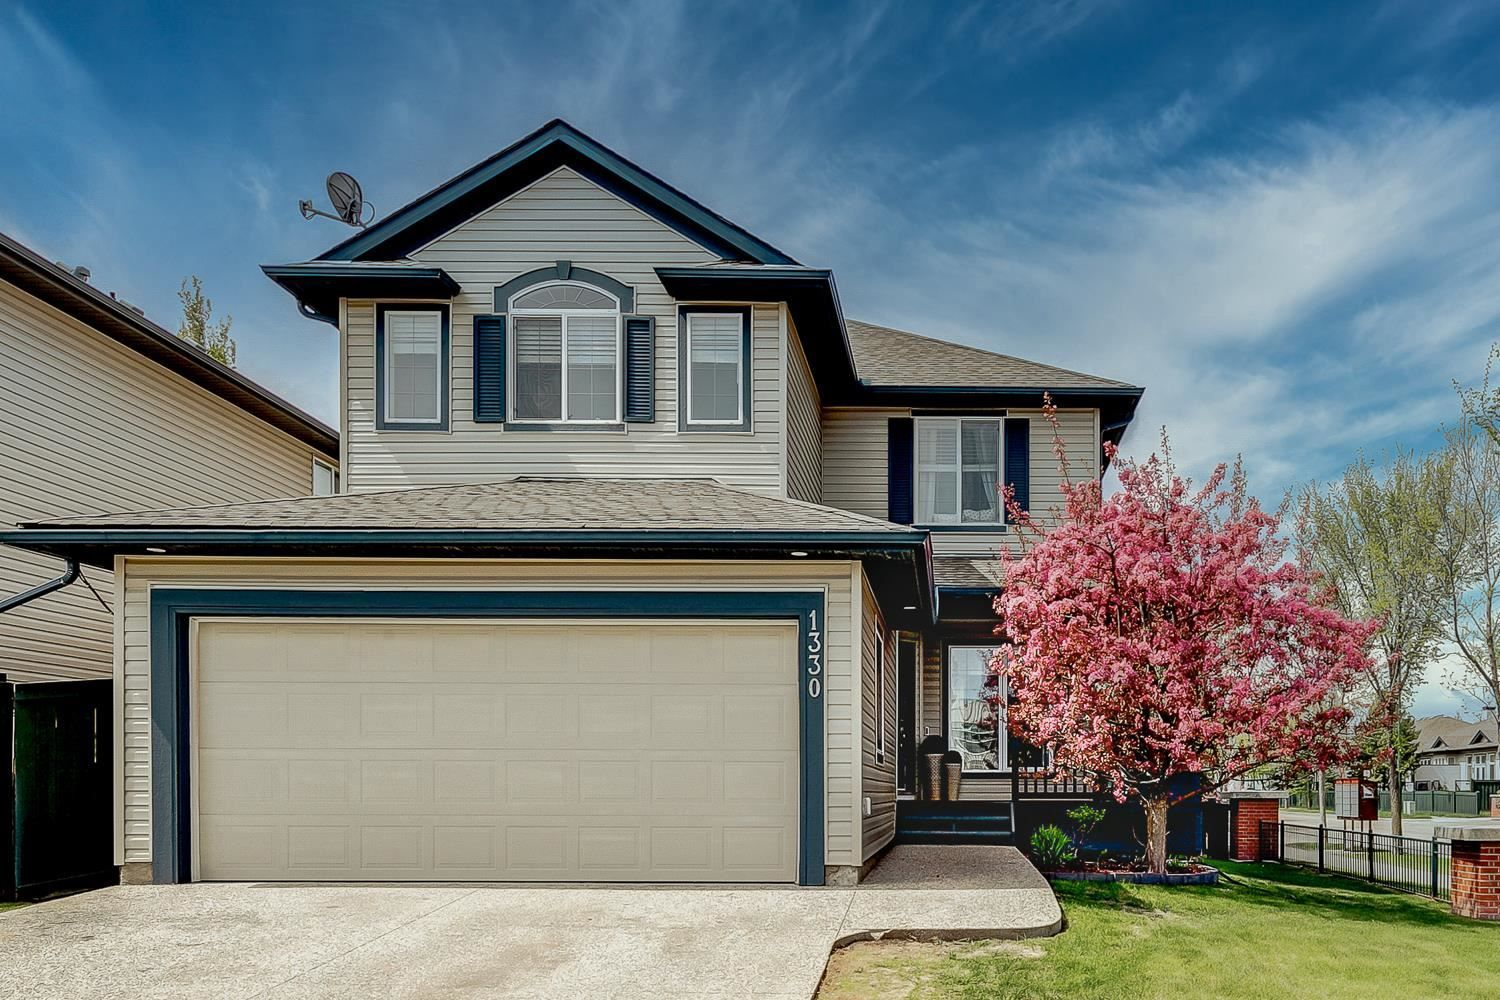 Main Photo: 1330 RUTHERFORD Road in Edmonton: Zone 55 House for sale : MLS®# E4246252